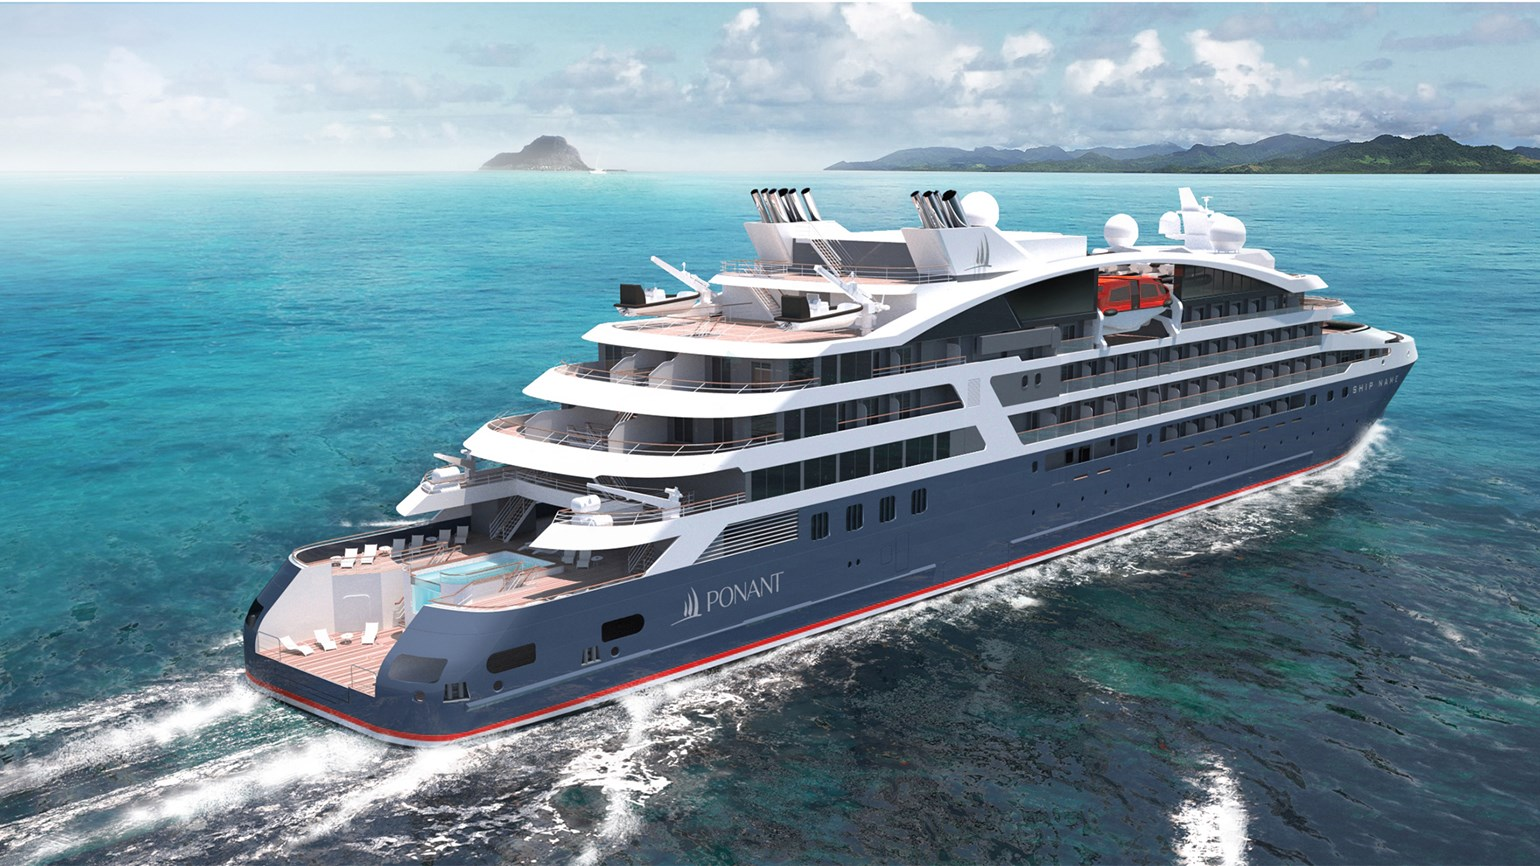 Ponant naming expedition ships after French explorers ...